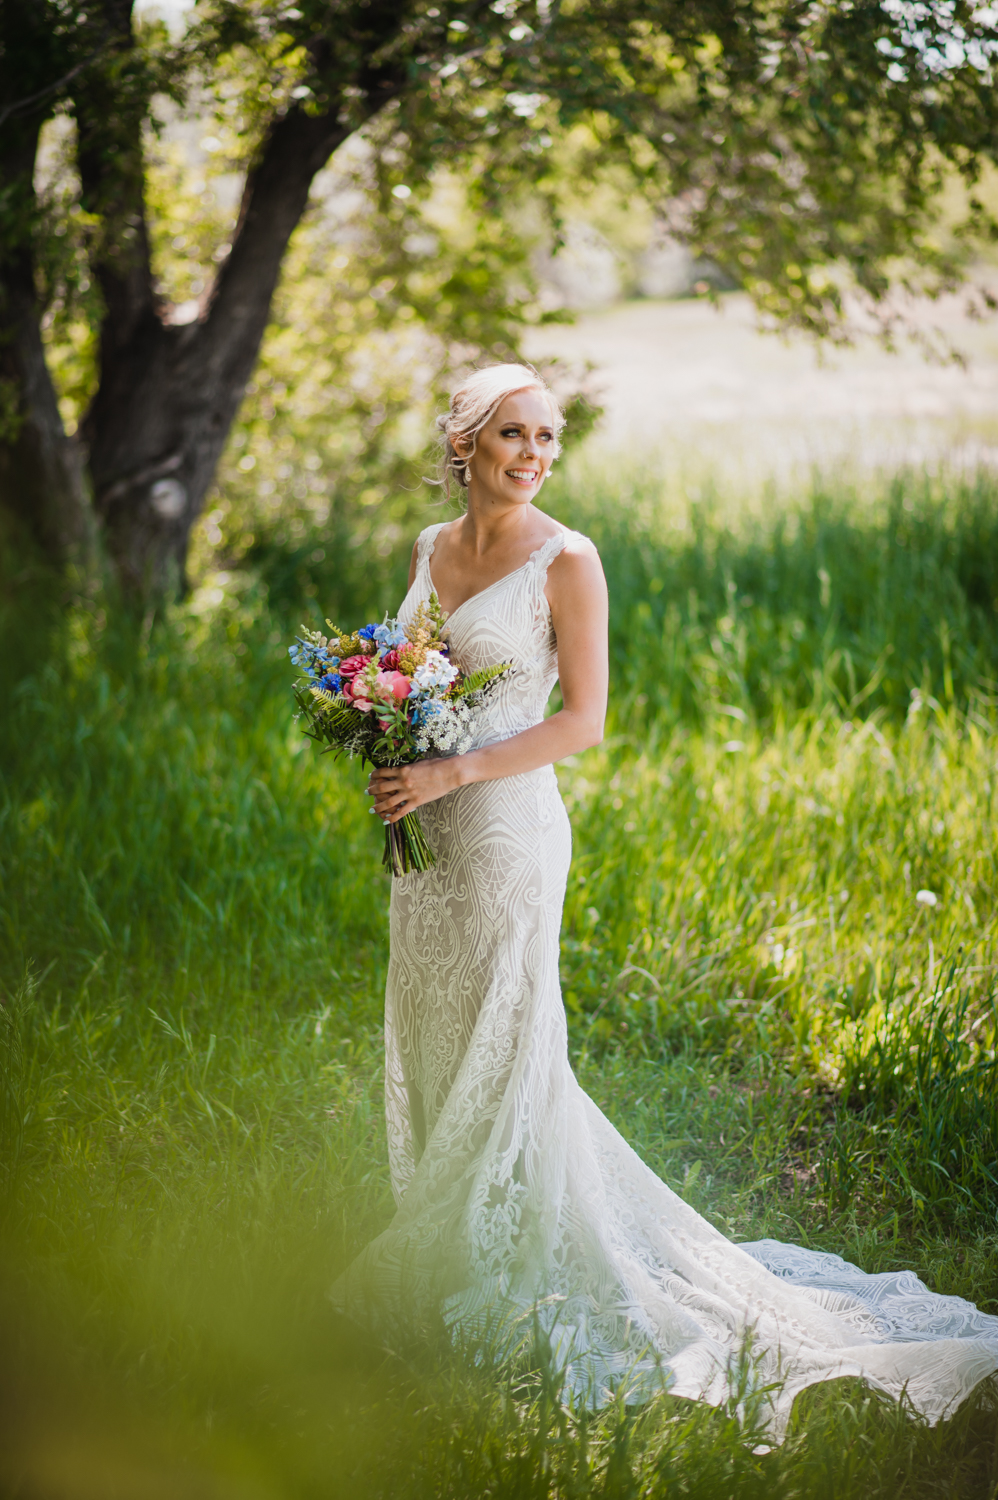 PHOCO Photography Dani Sam Wedding Island Pelican Lakes Colorado-3.jpg